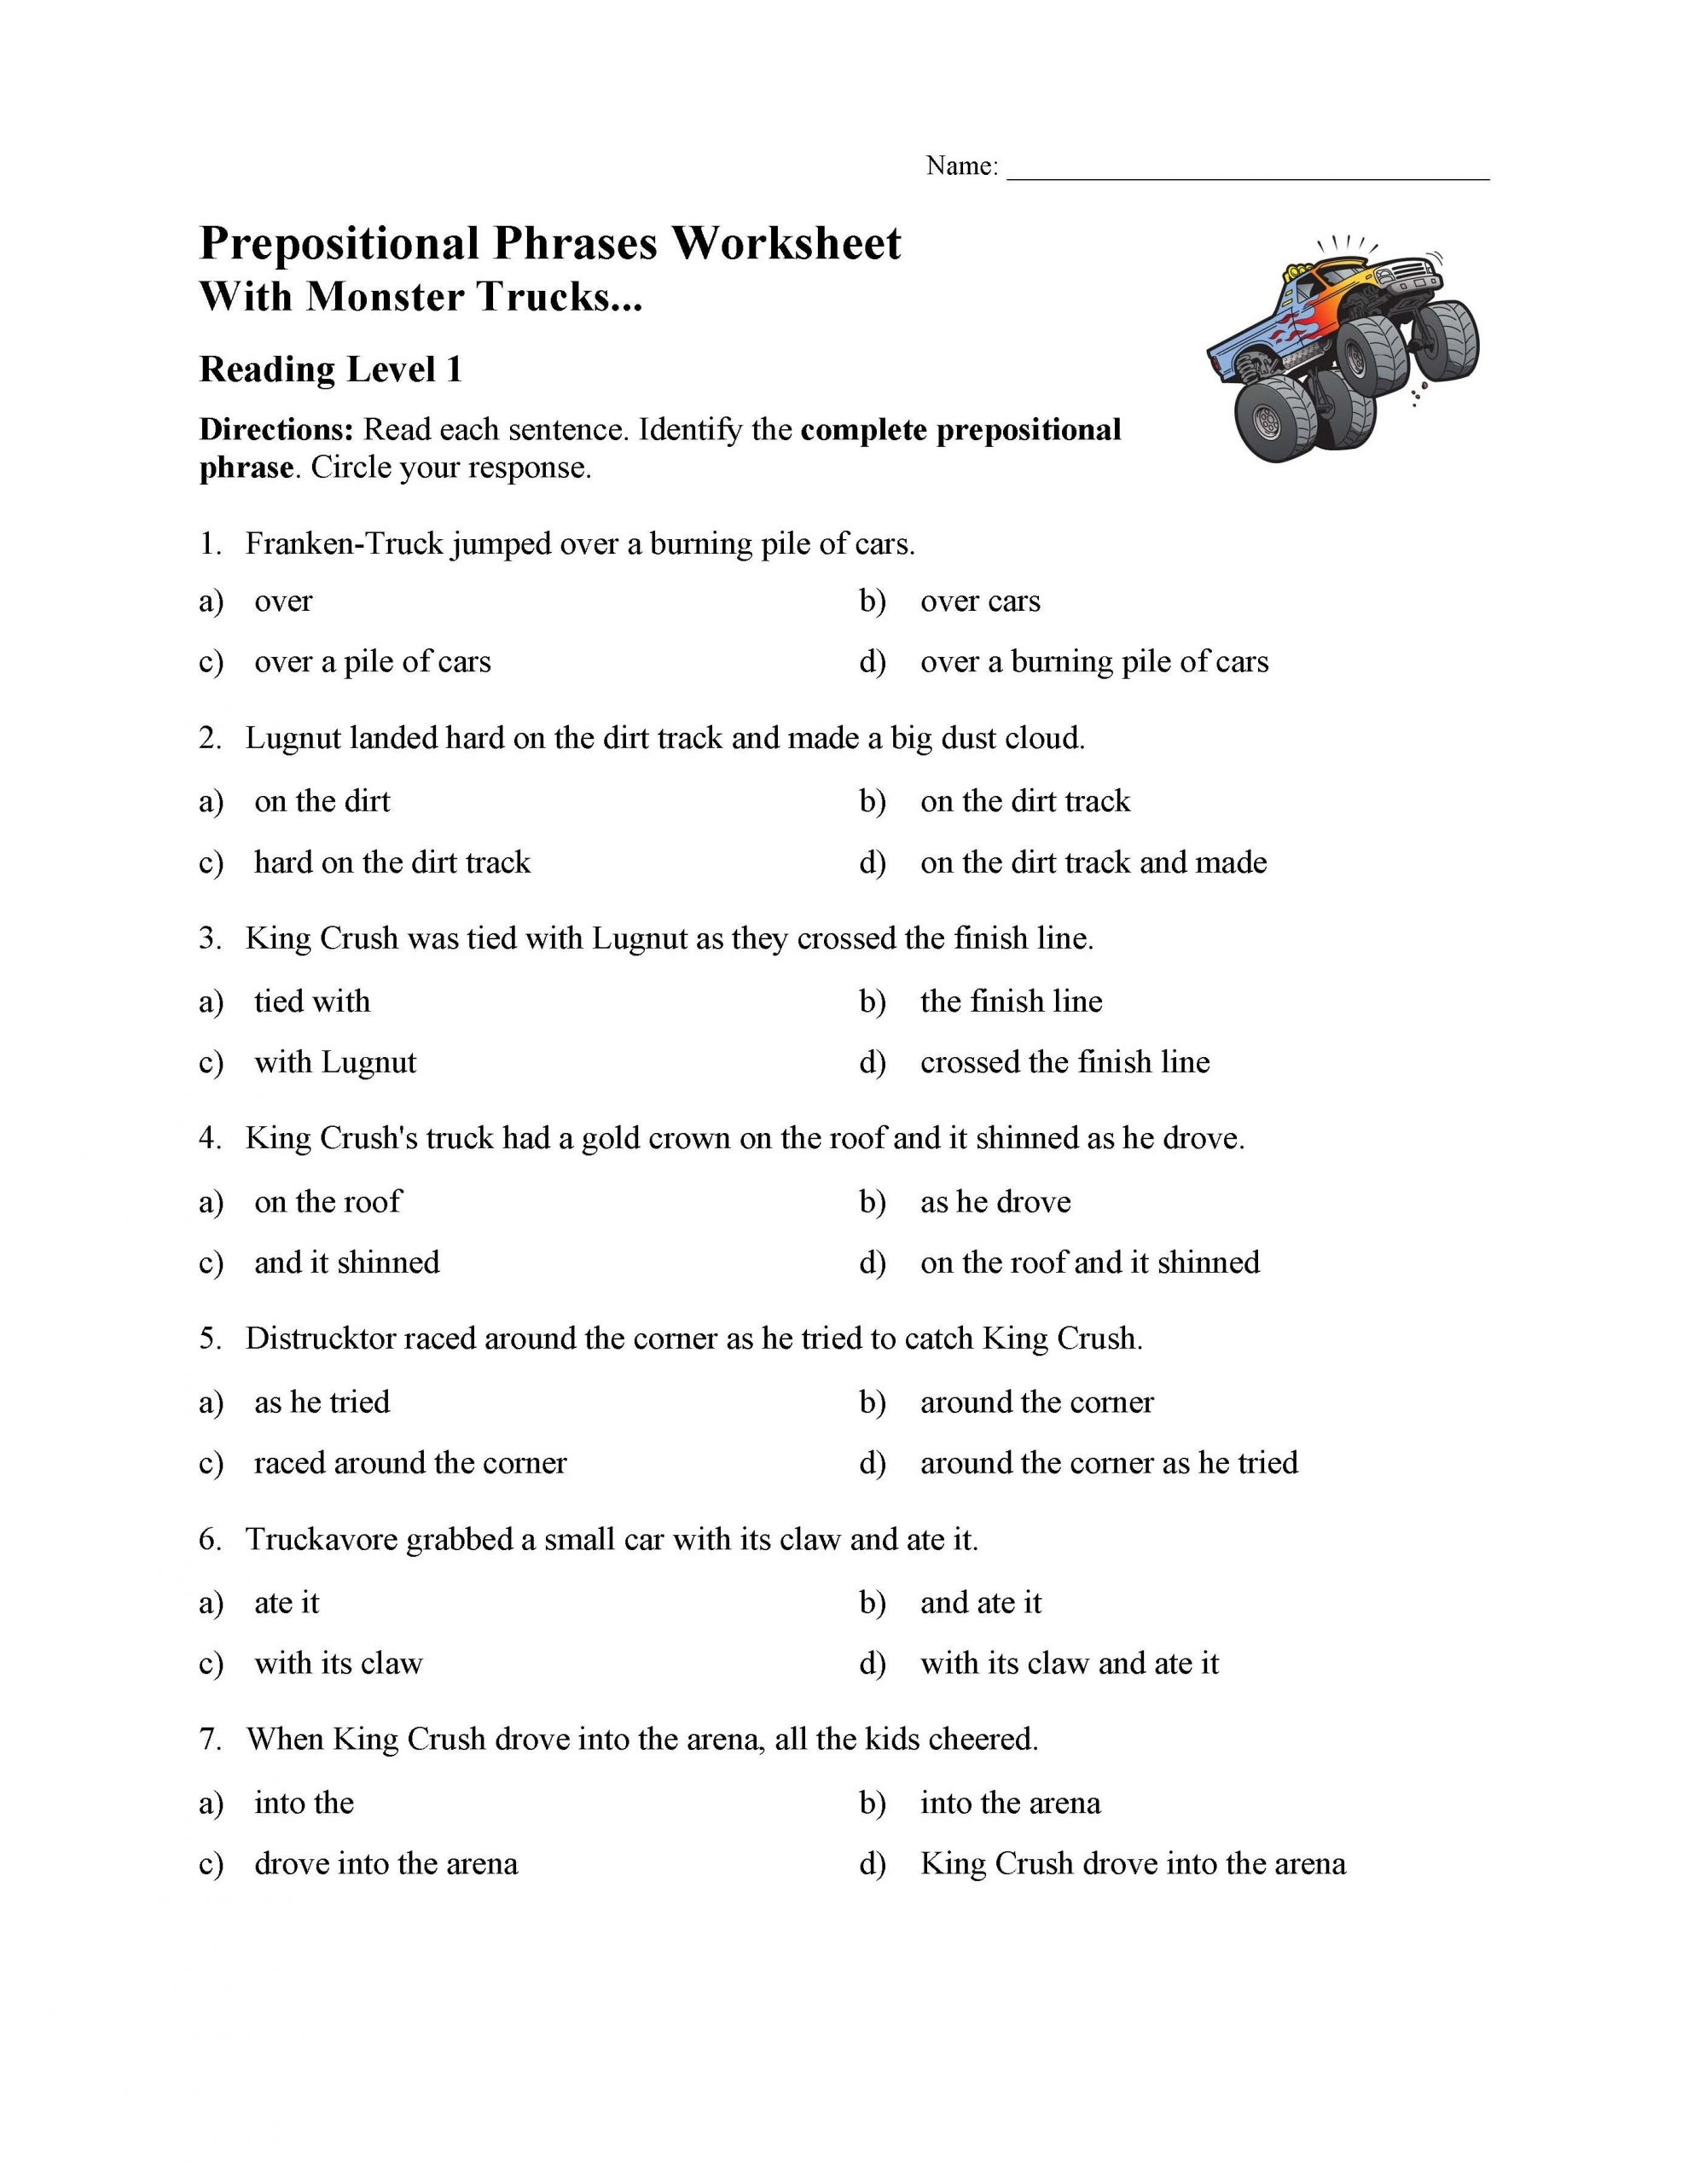 Reading Worksheets 5th Grade Prepositional Phrases Worksheet 1 Reading Level 1